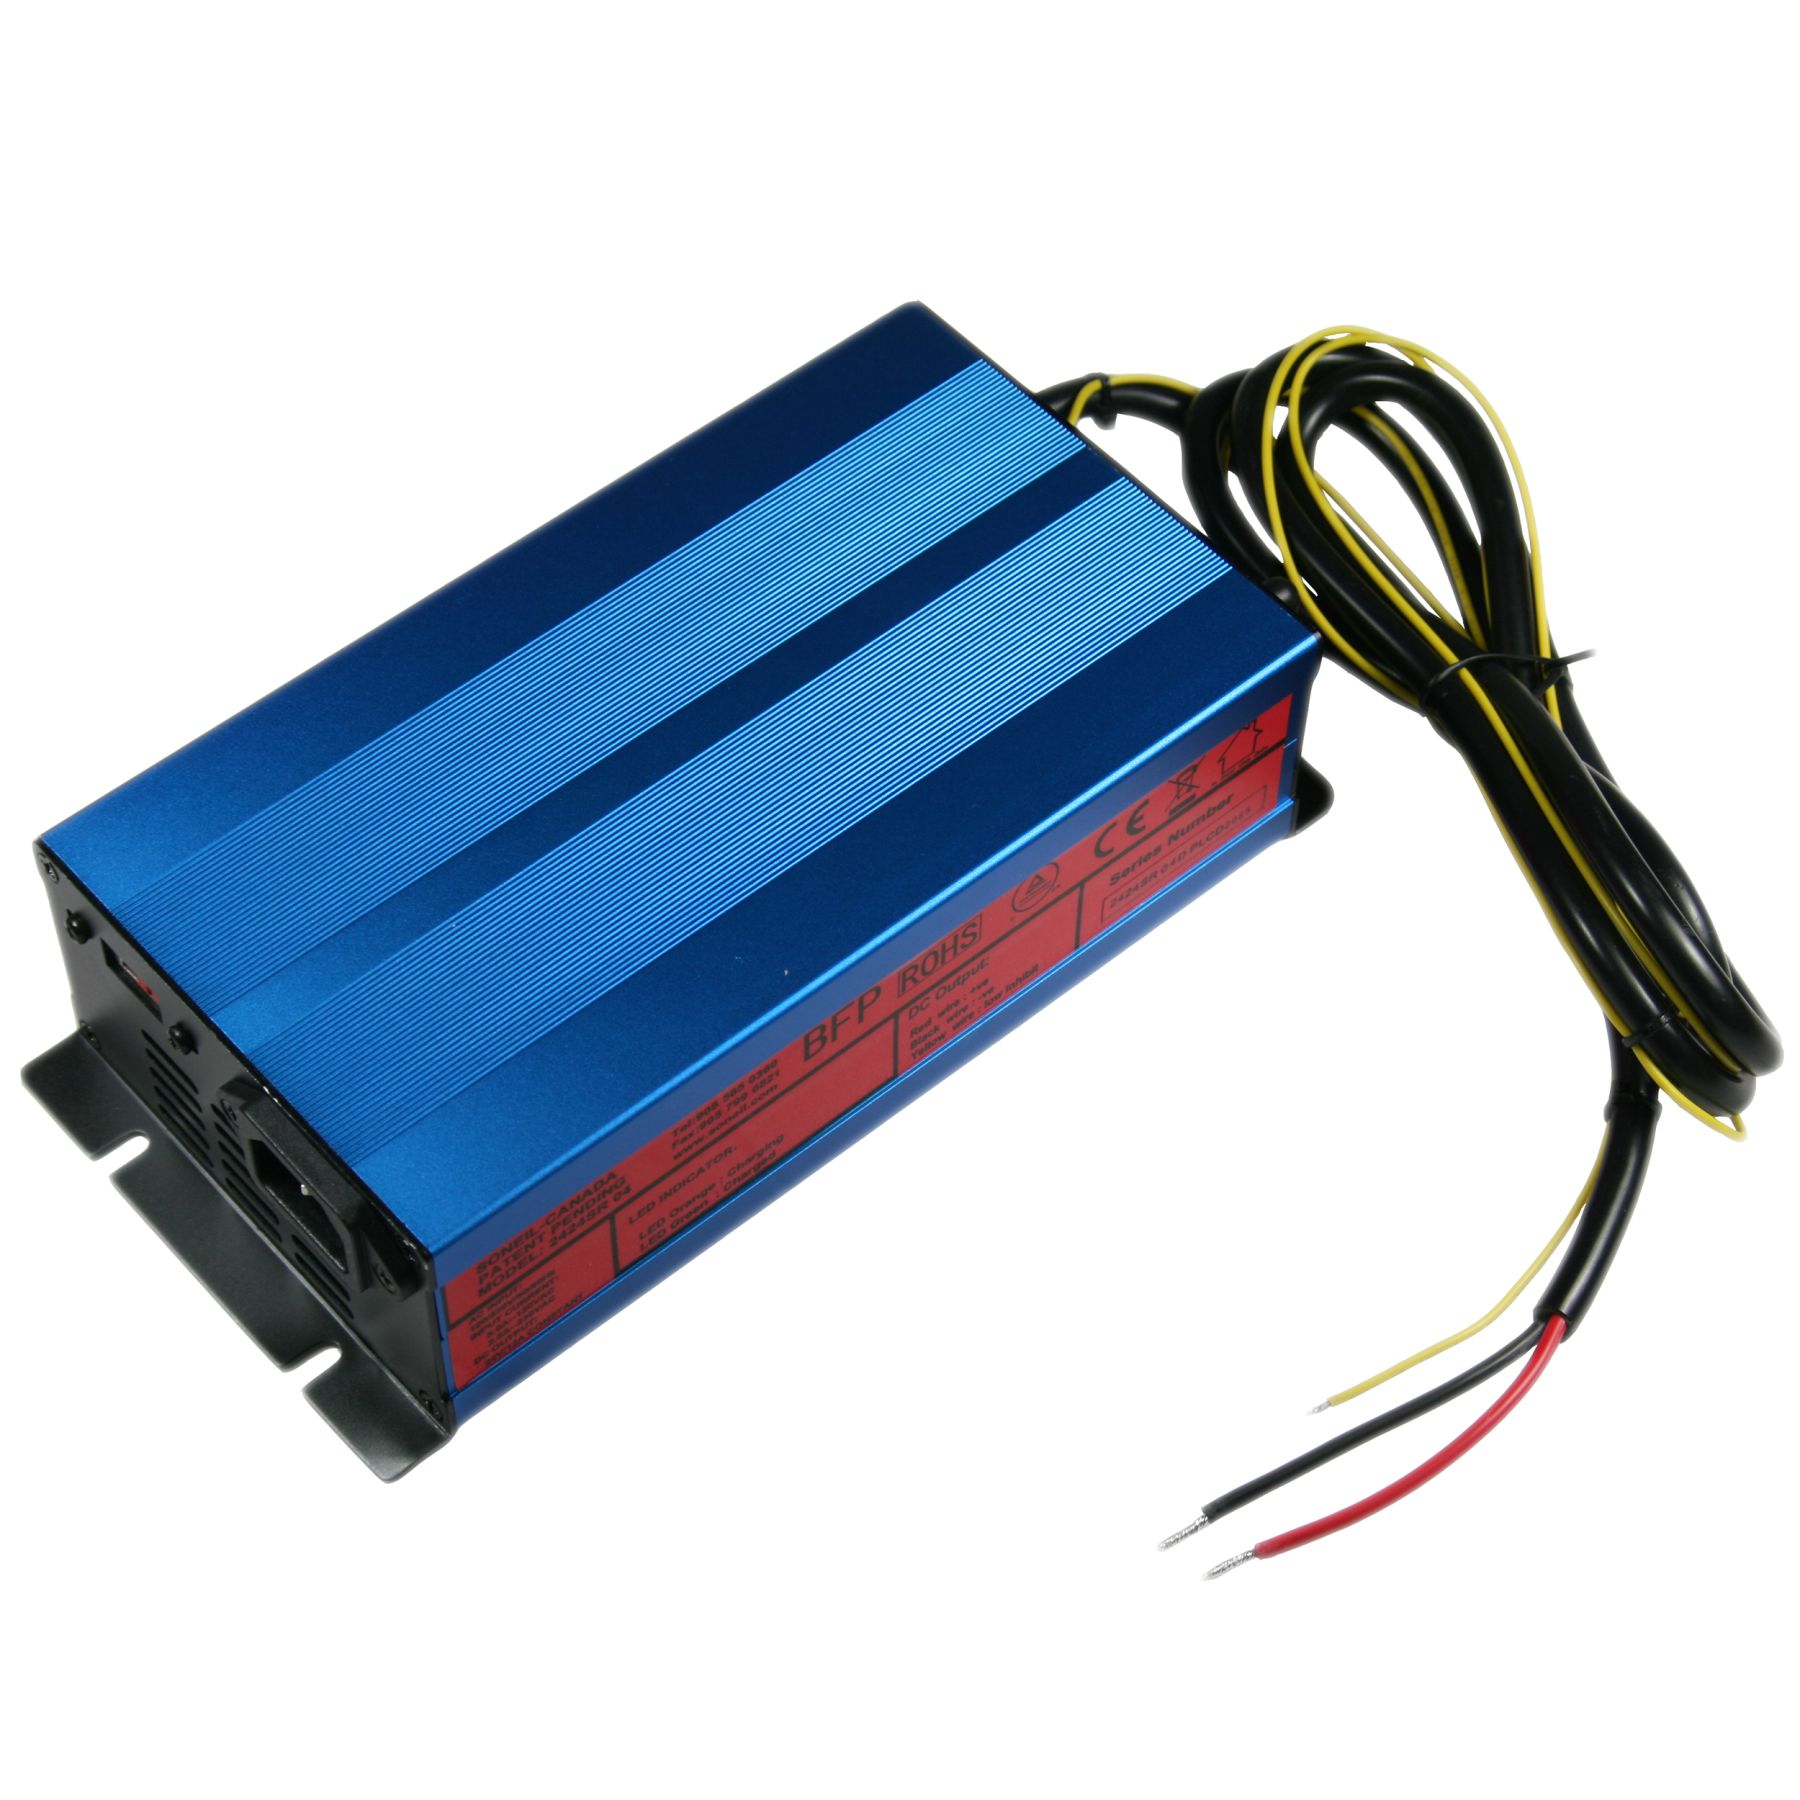 2424sr04 Soneil 24v 12 Amp Constant Current Smart Charger Sealed Lead Acid Battery Dual Step Mode